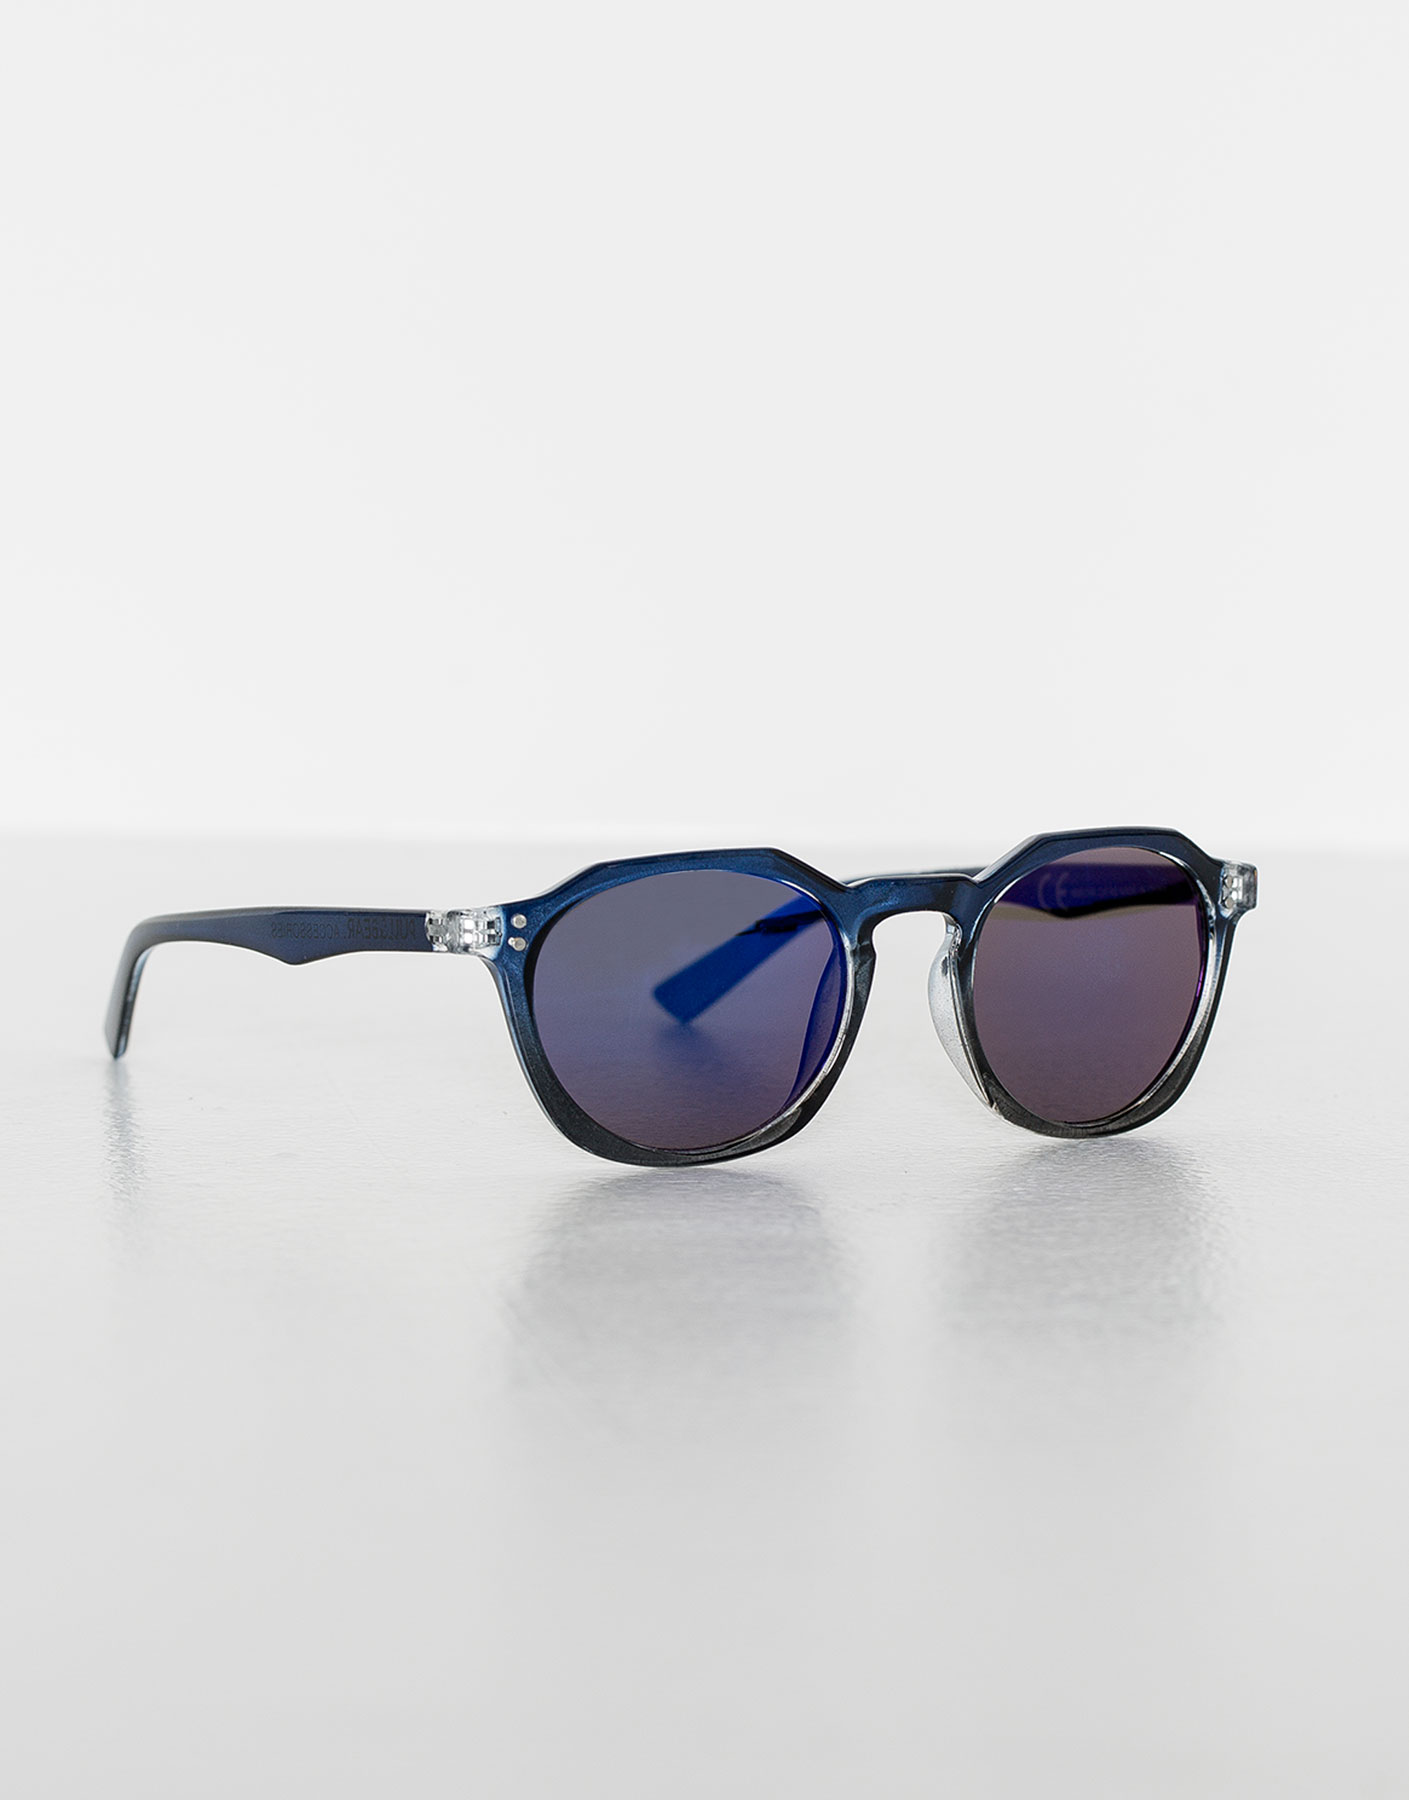 Blue resin sunglasses